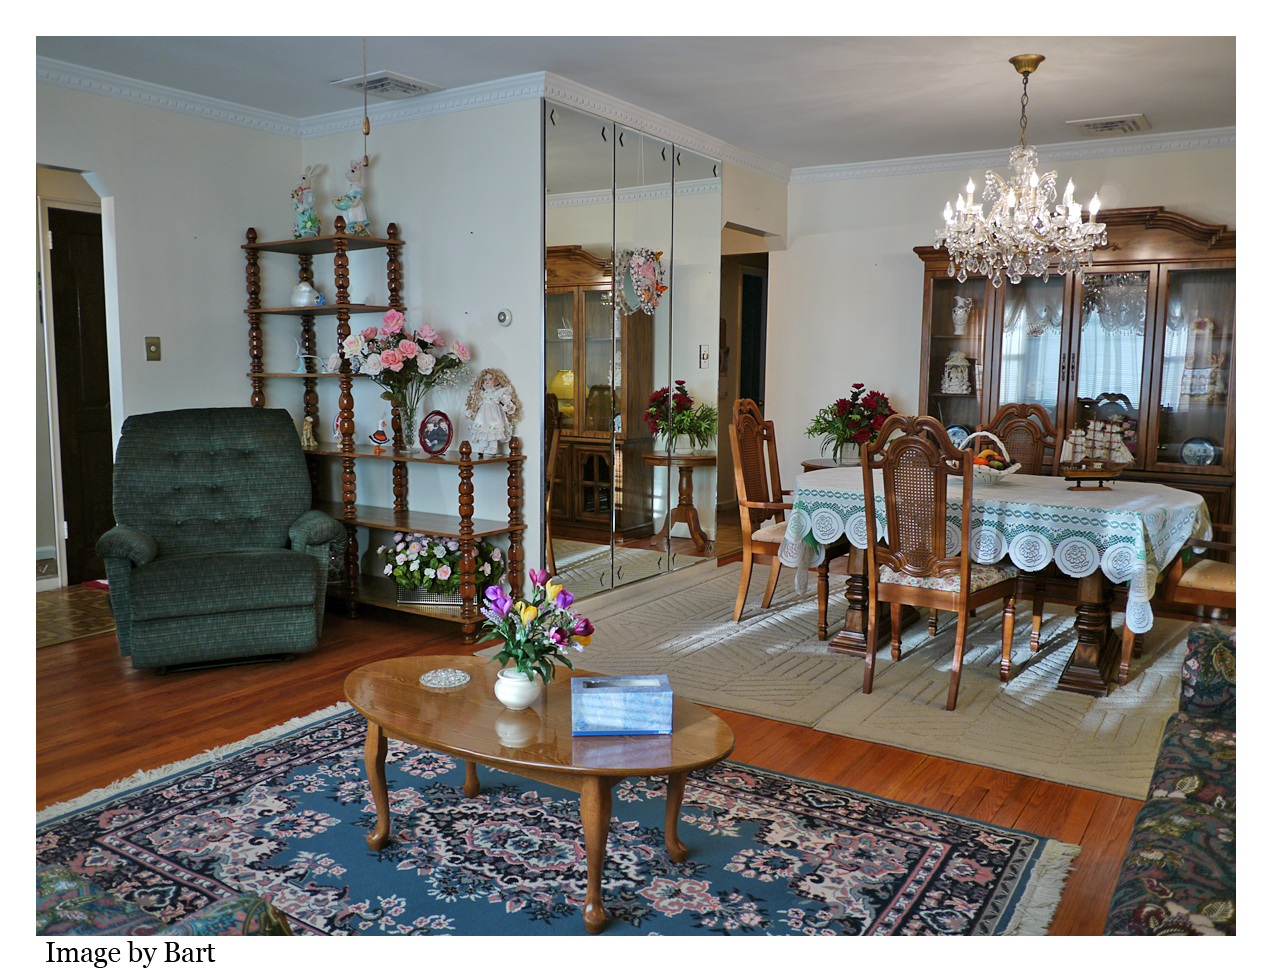 middle village singles For sale - 62-38 84 st, middle village, ny - $868,000 view details, map and photos of this single family property with 3 bedrooms and 2 total baths mls# 3016238.